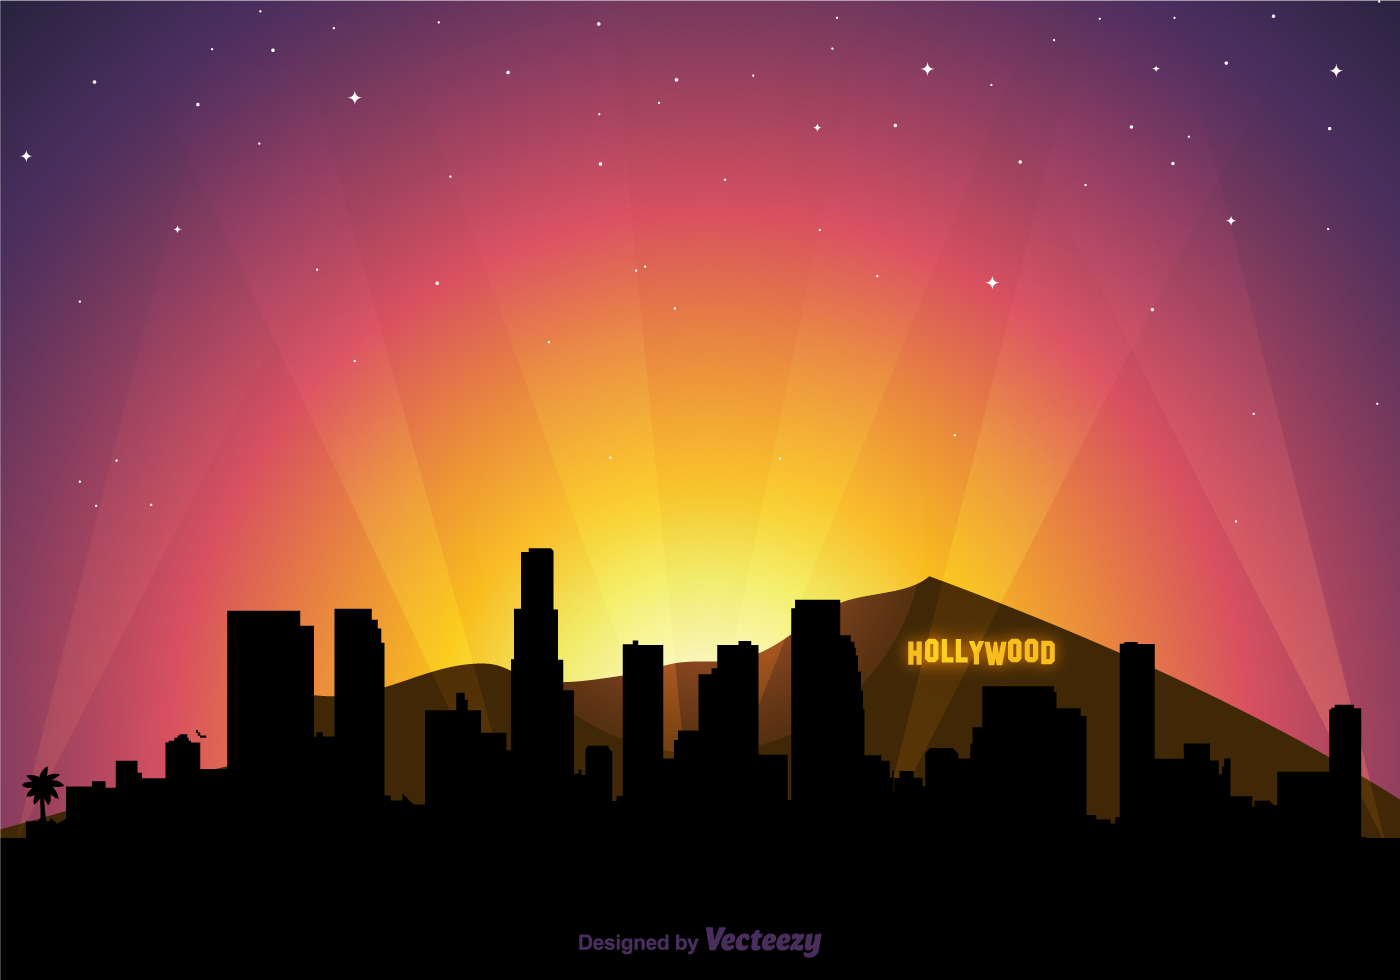 Free Vector Hollywood Skyline At Sunset - Download Free Vector Art, Stock Graphics ...  Free Vector Hol...